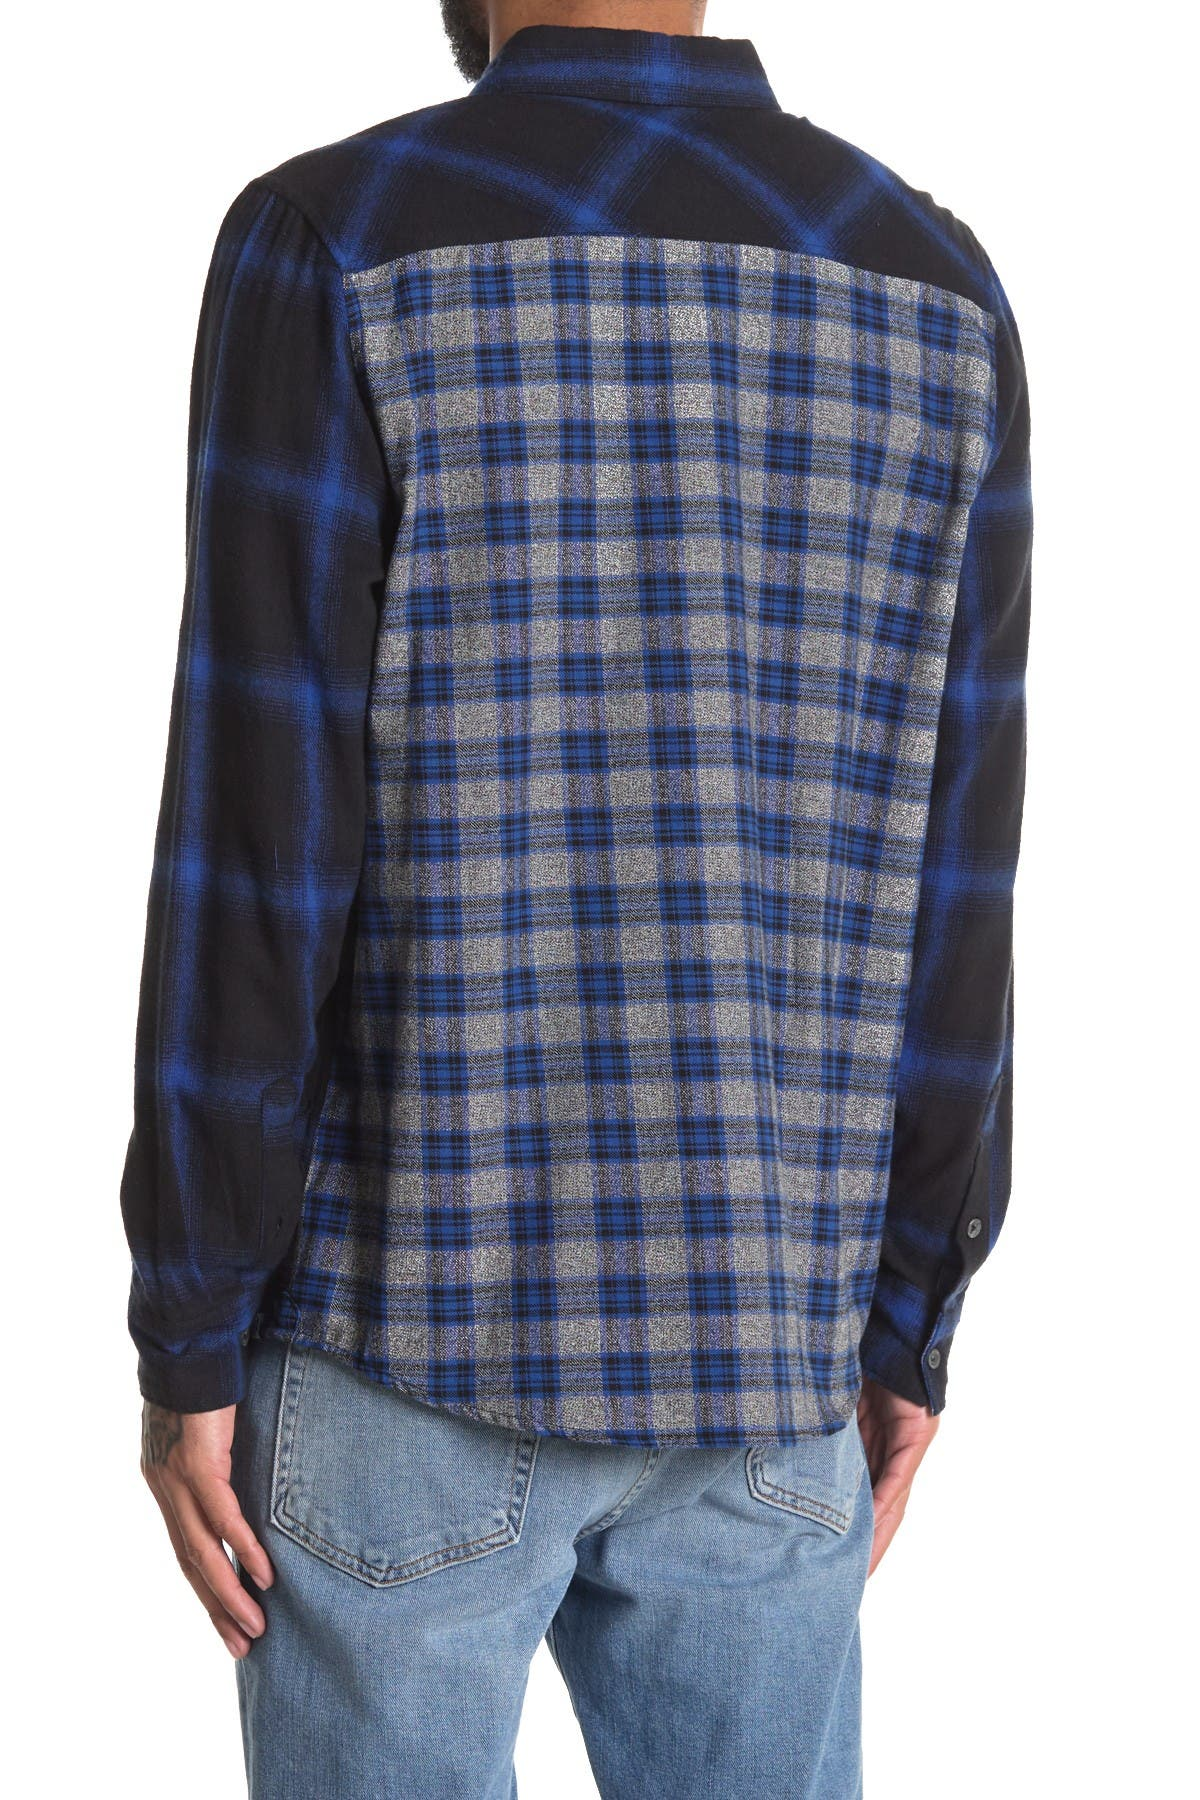 Image of Sovereign Code Local Legend Plaid Print Long Sleeve Shirt